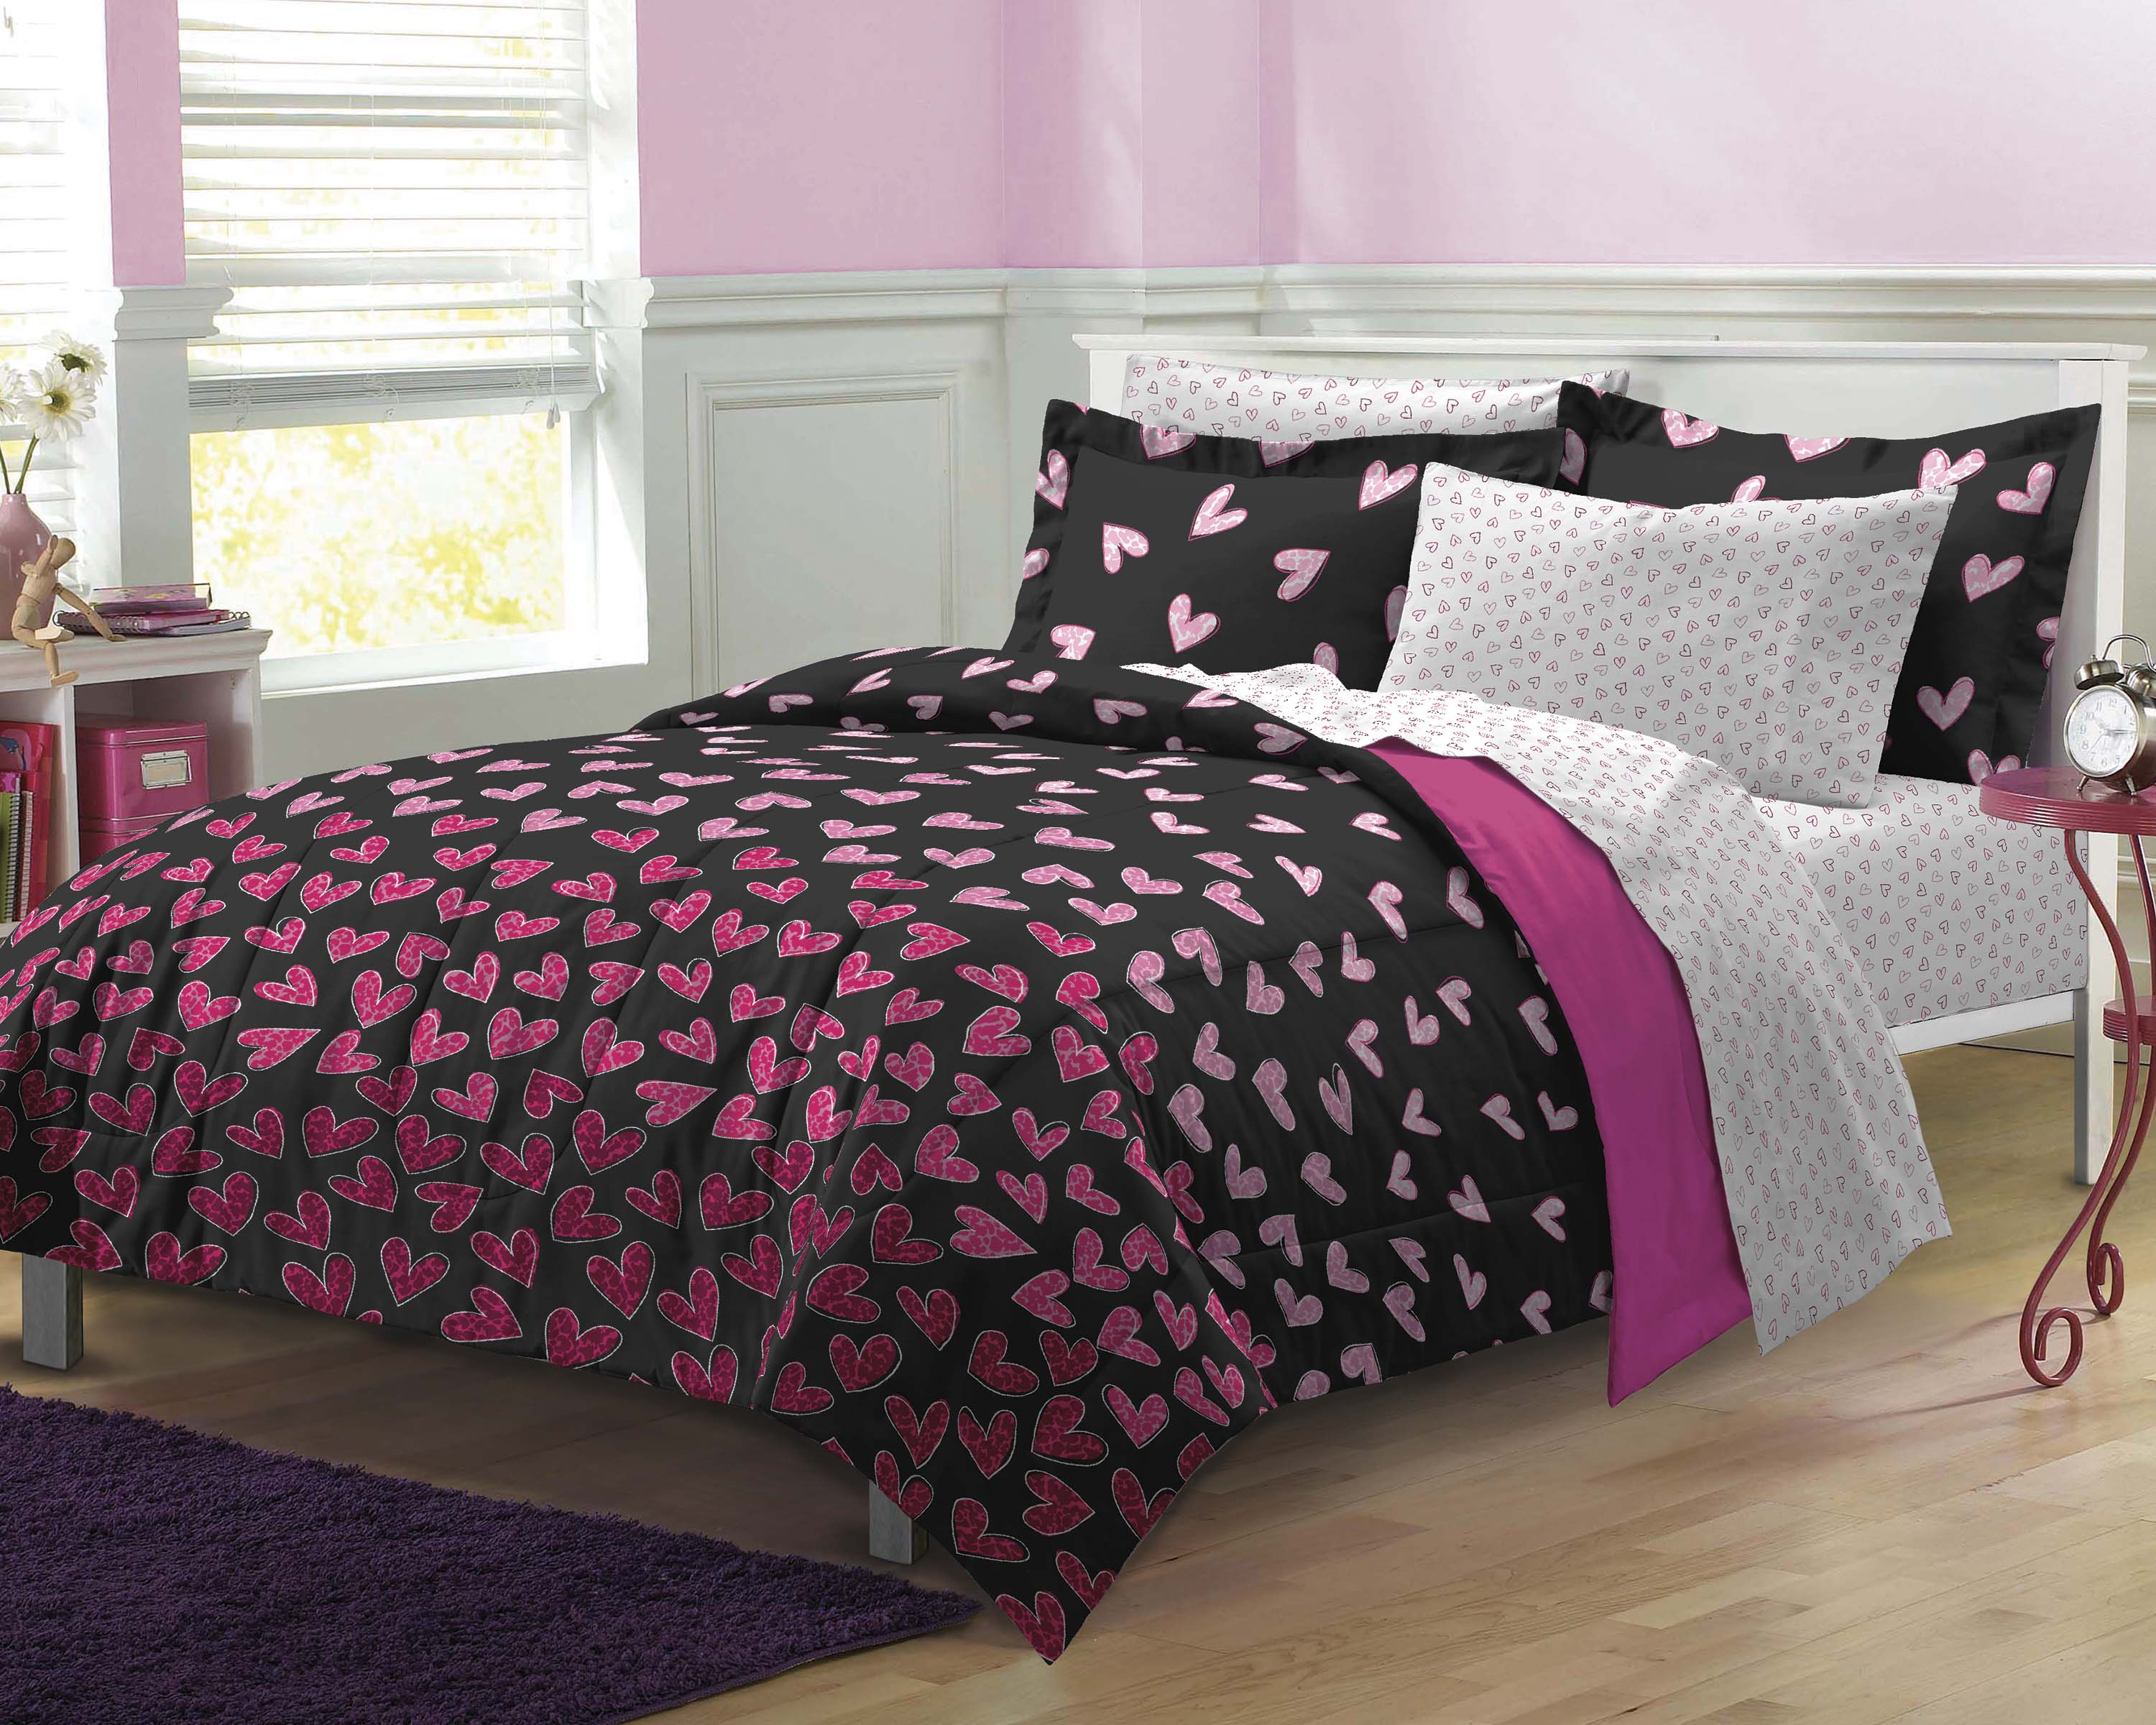 NEW Hot Pink Wild Hearts Teen Bedding Comforter Sheet Set Twin, Twin XL